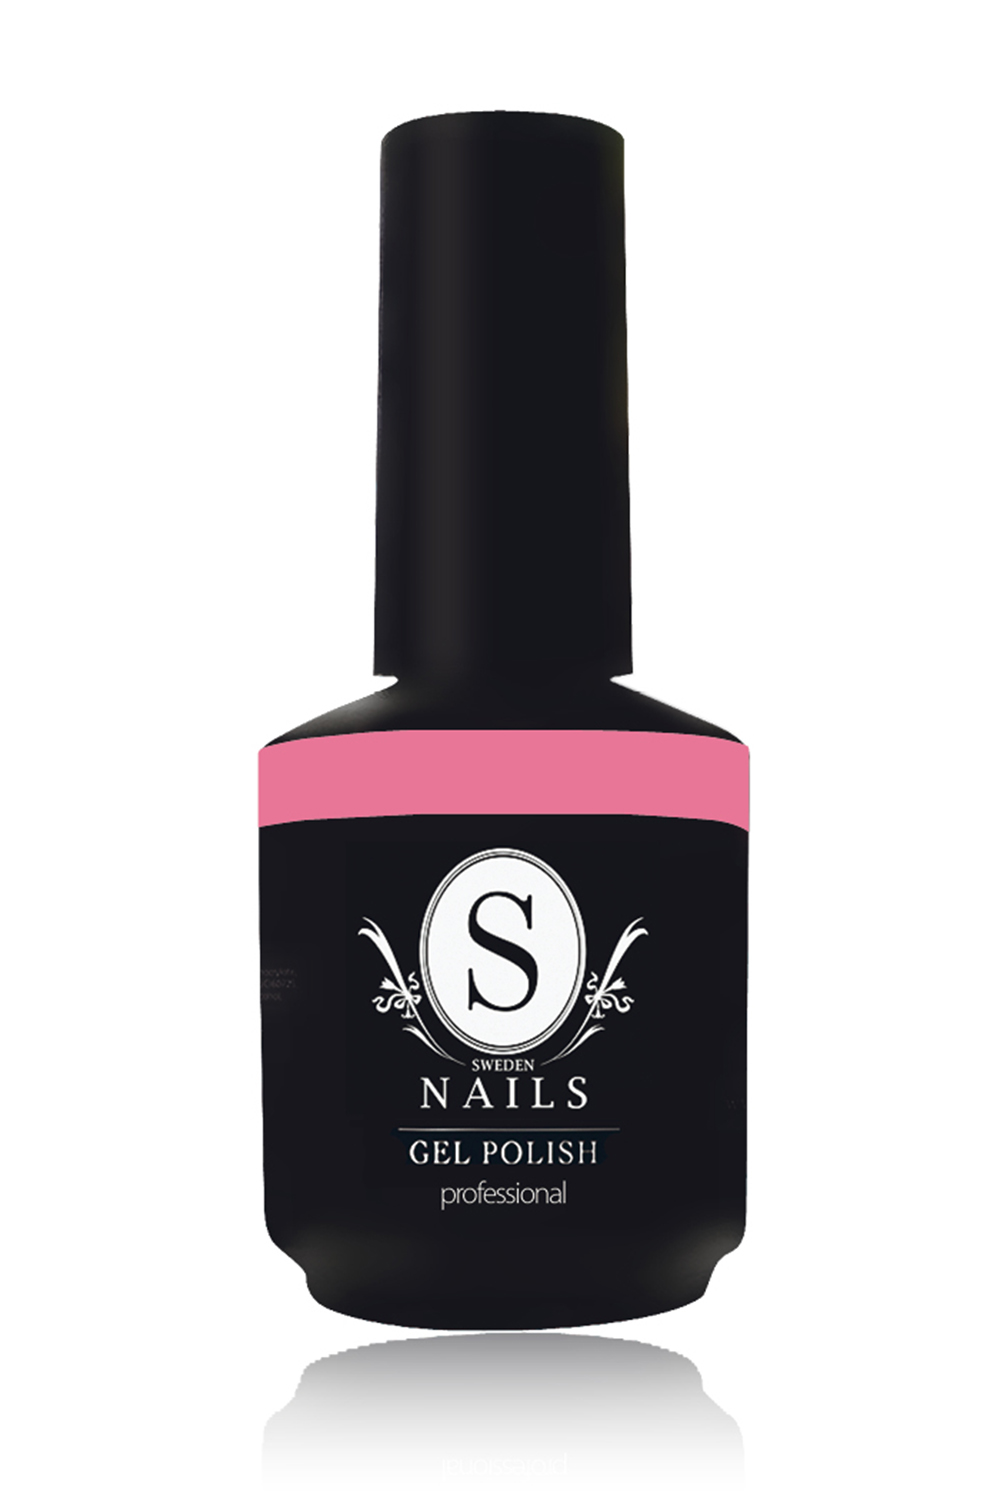 Foto Gelpolish Sweden Nails 117